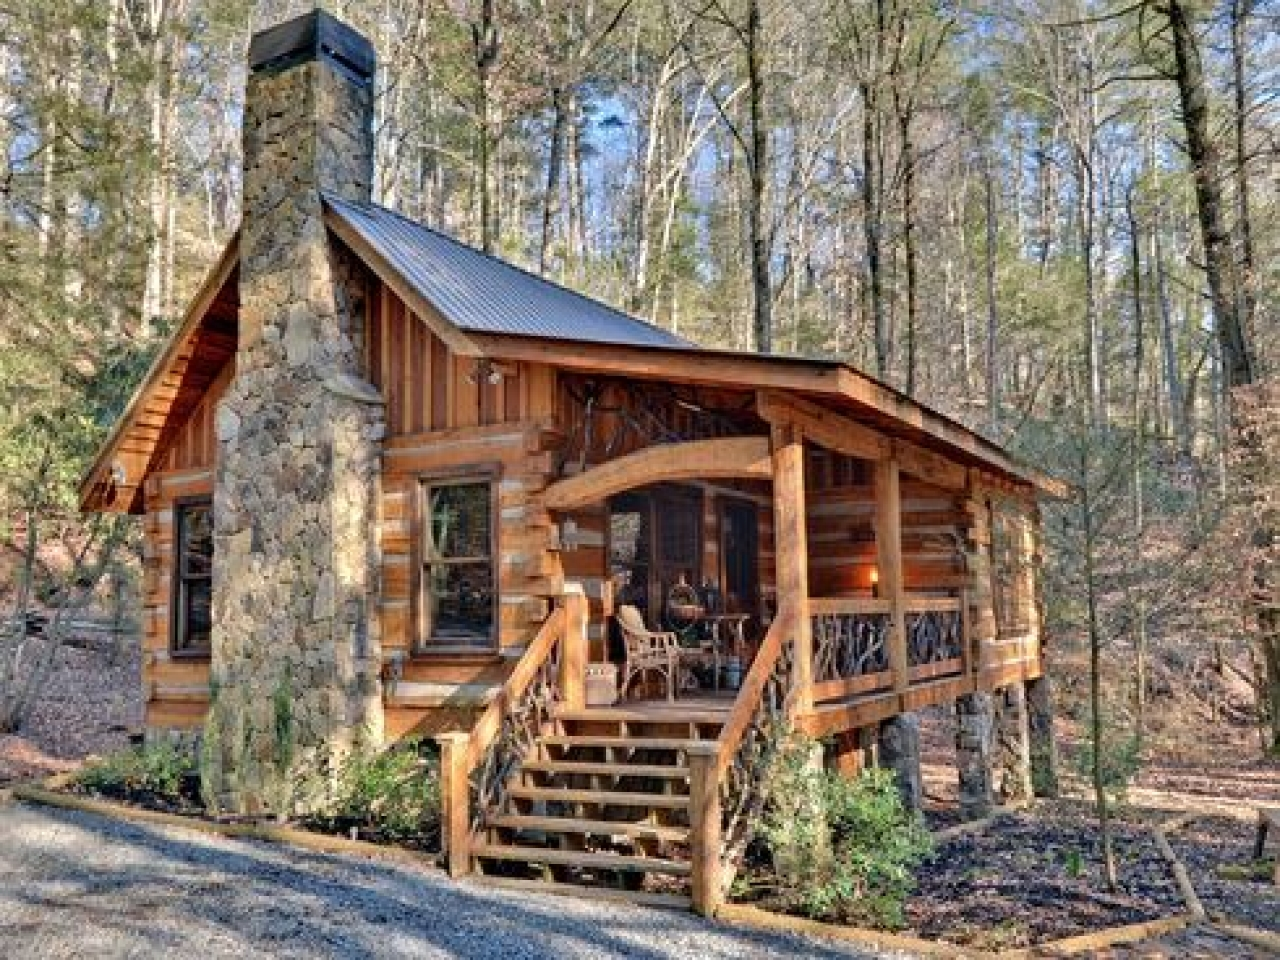 Hewed Log Cabin